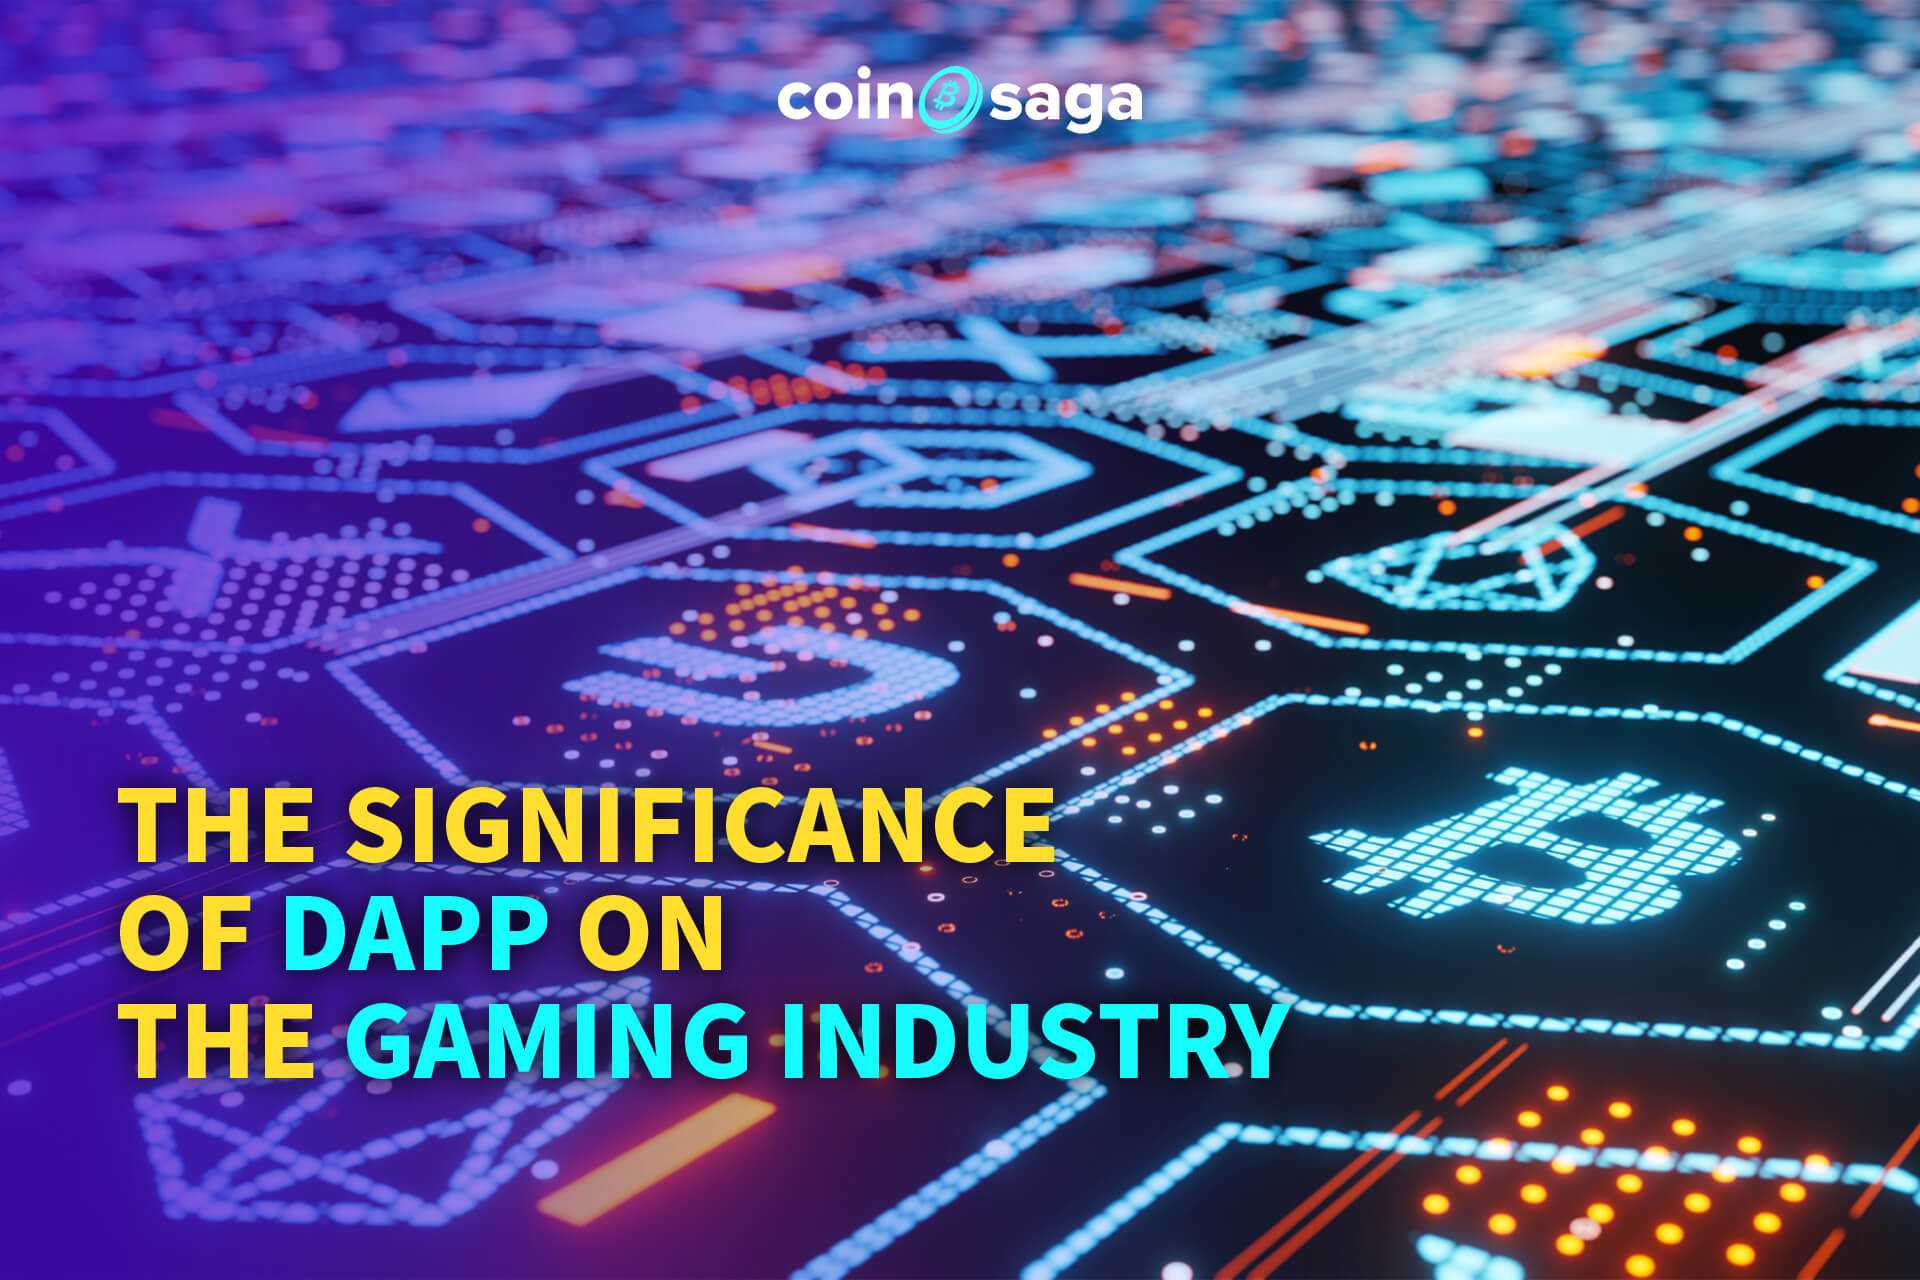 dapp in gaming industry